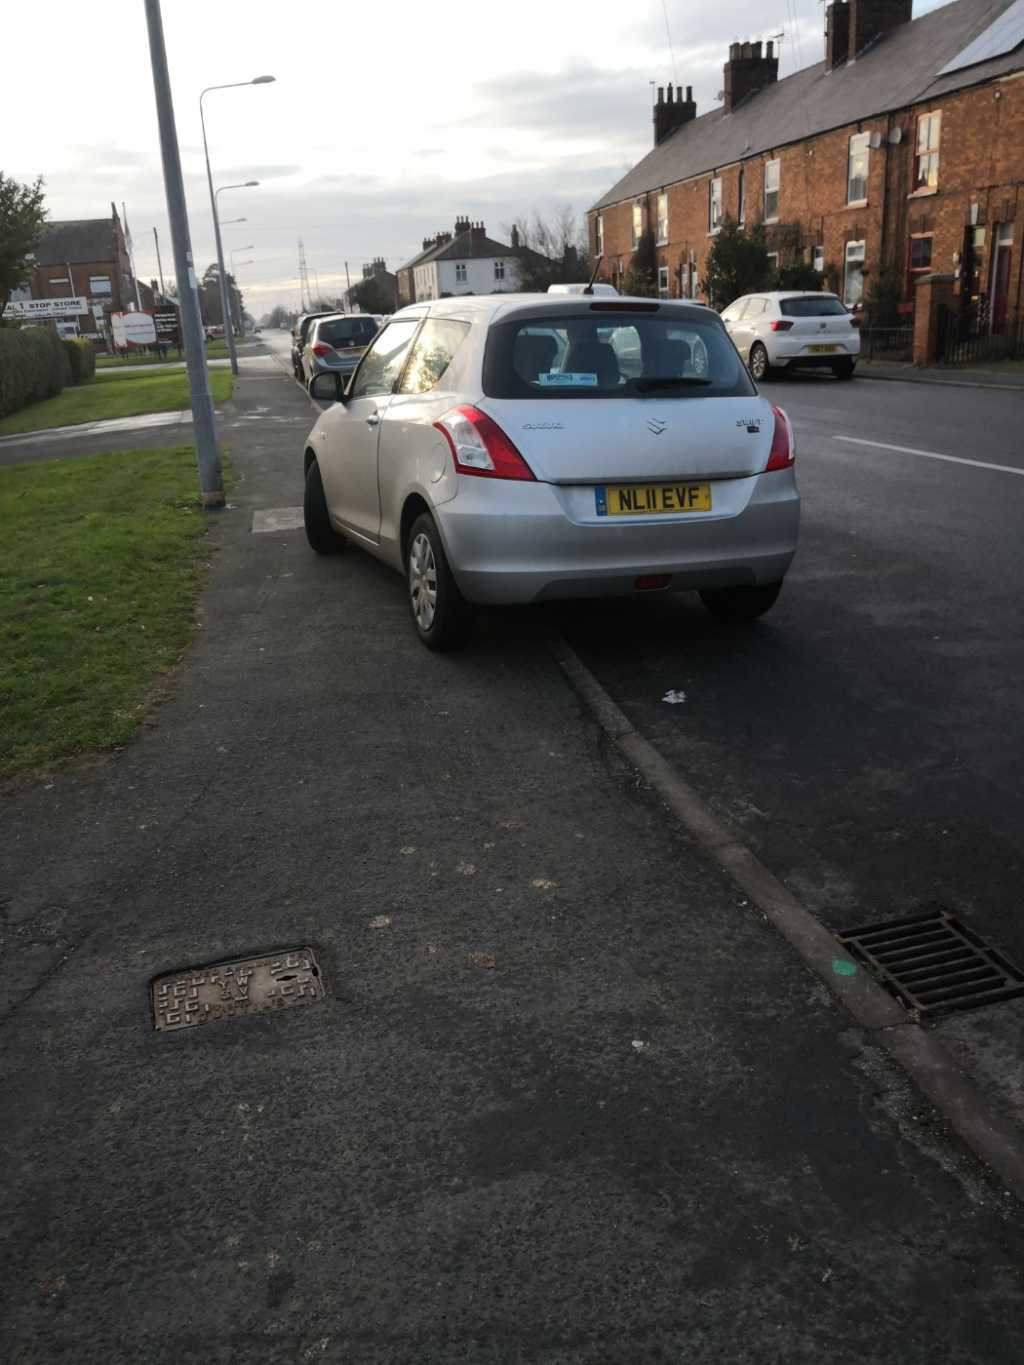 NL11 EVF is an Inconsiderate Parker